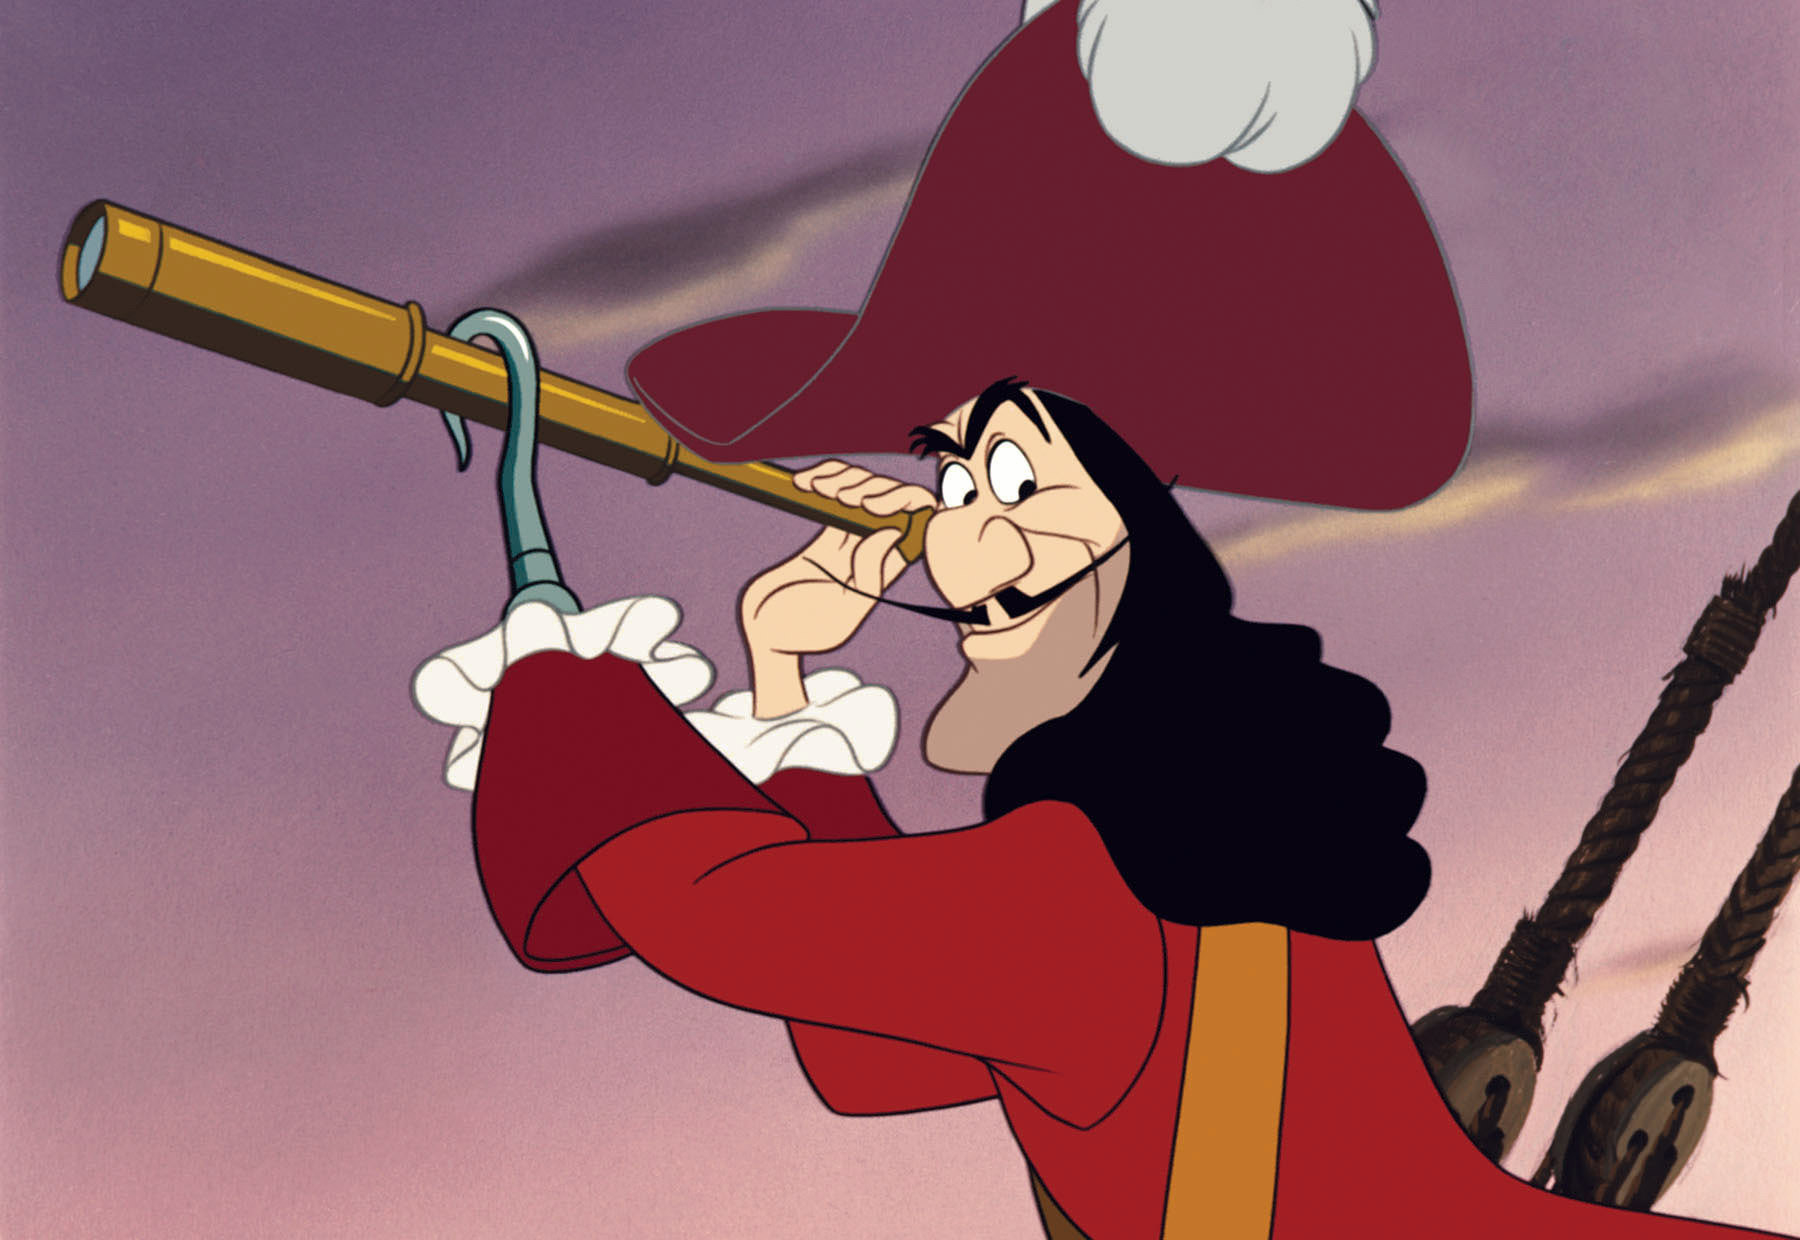 Captain Hook peers out of a spyglass